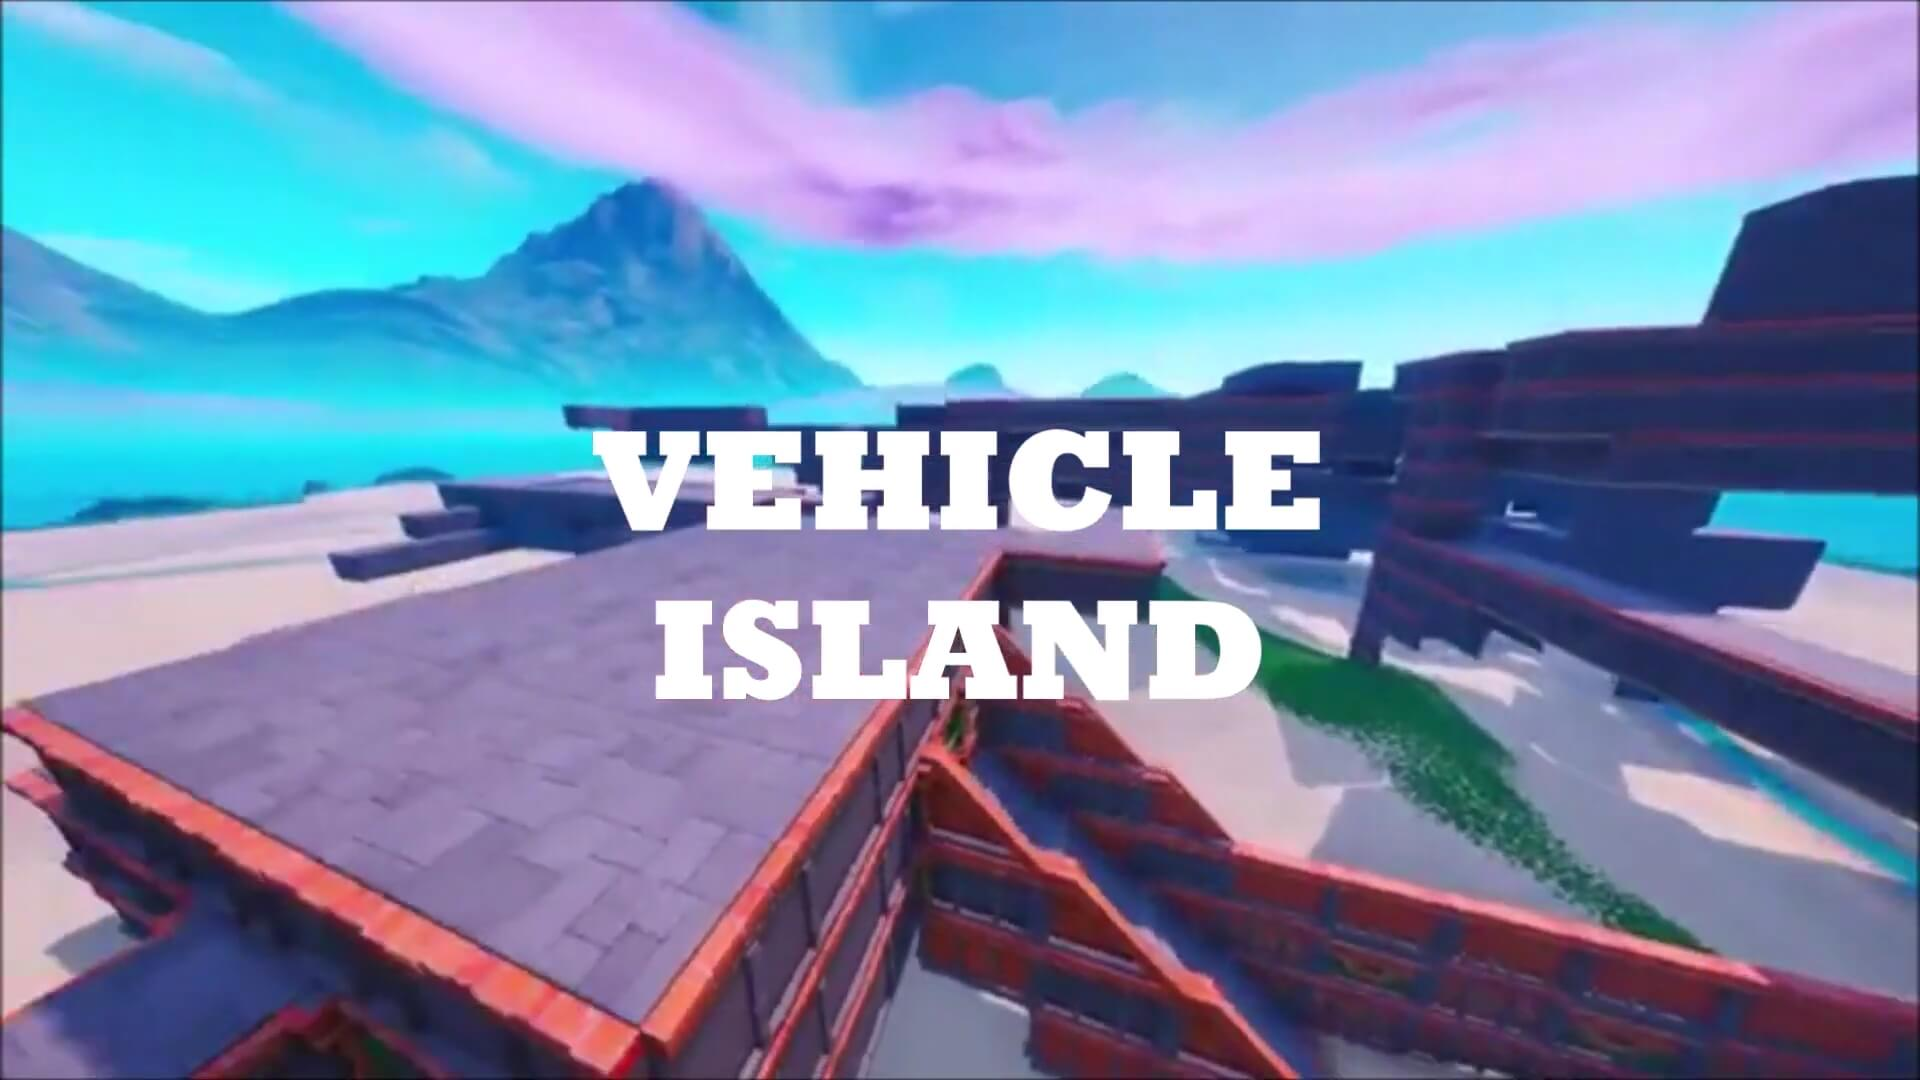 VEHICLE ISLAND